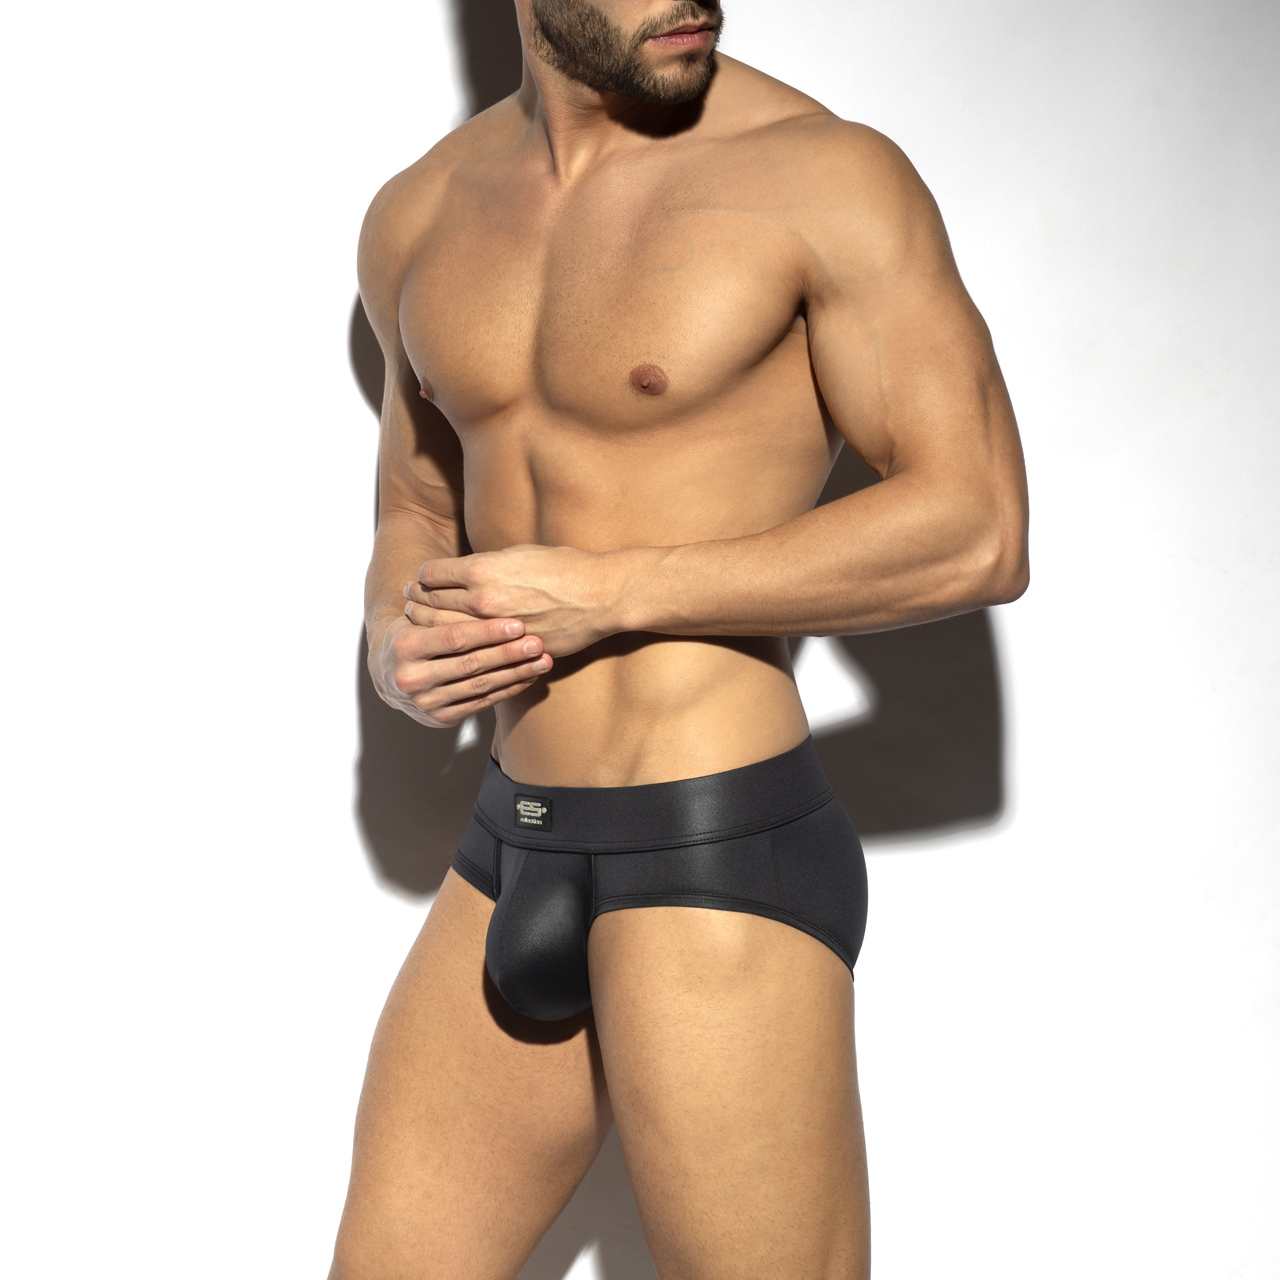 FETISH BRIEF BLACK 10